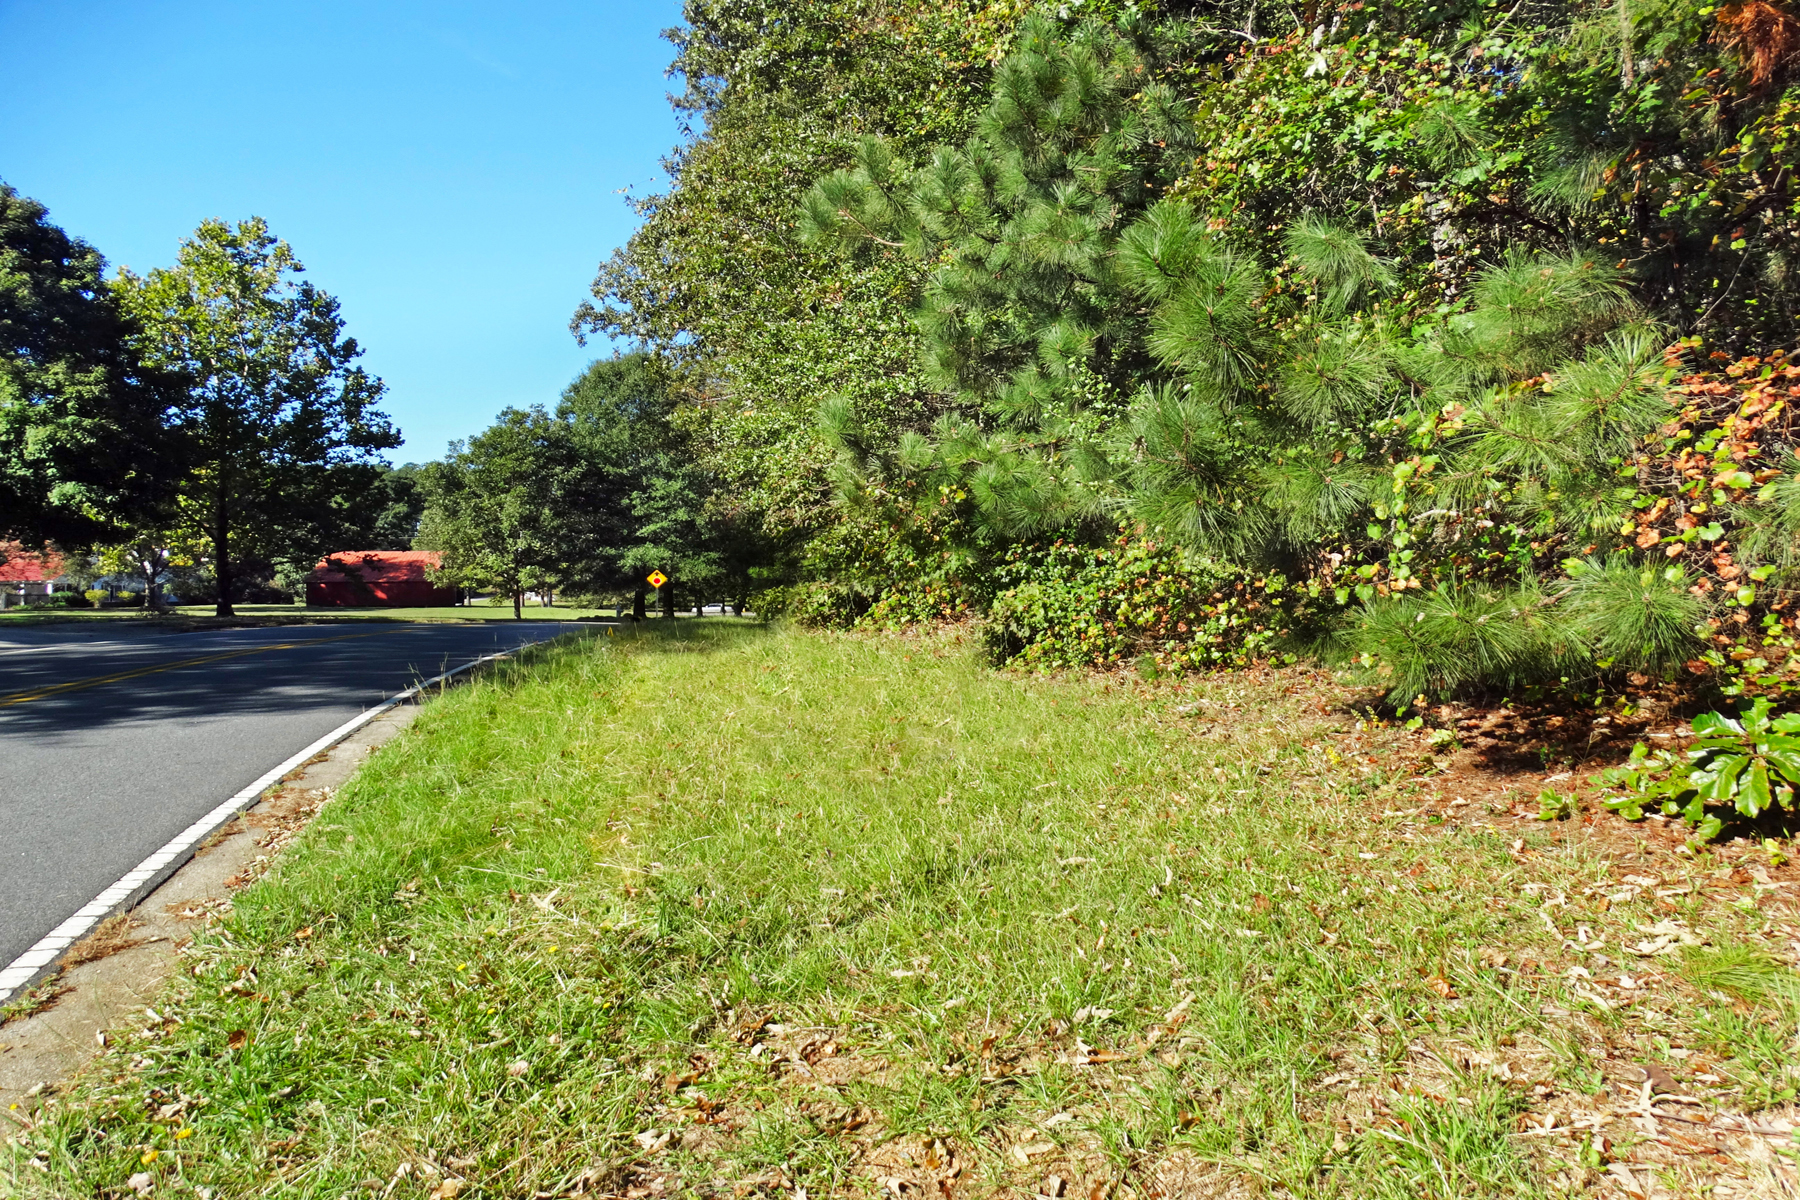 Land for Sale at 1.8+/- Acre Prime Lot Ready To Build 0 Gaydon Road Lot No. 4 Powder Springs, Georgia 30127 United States